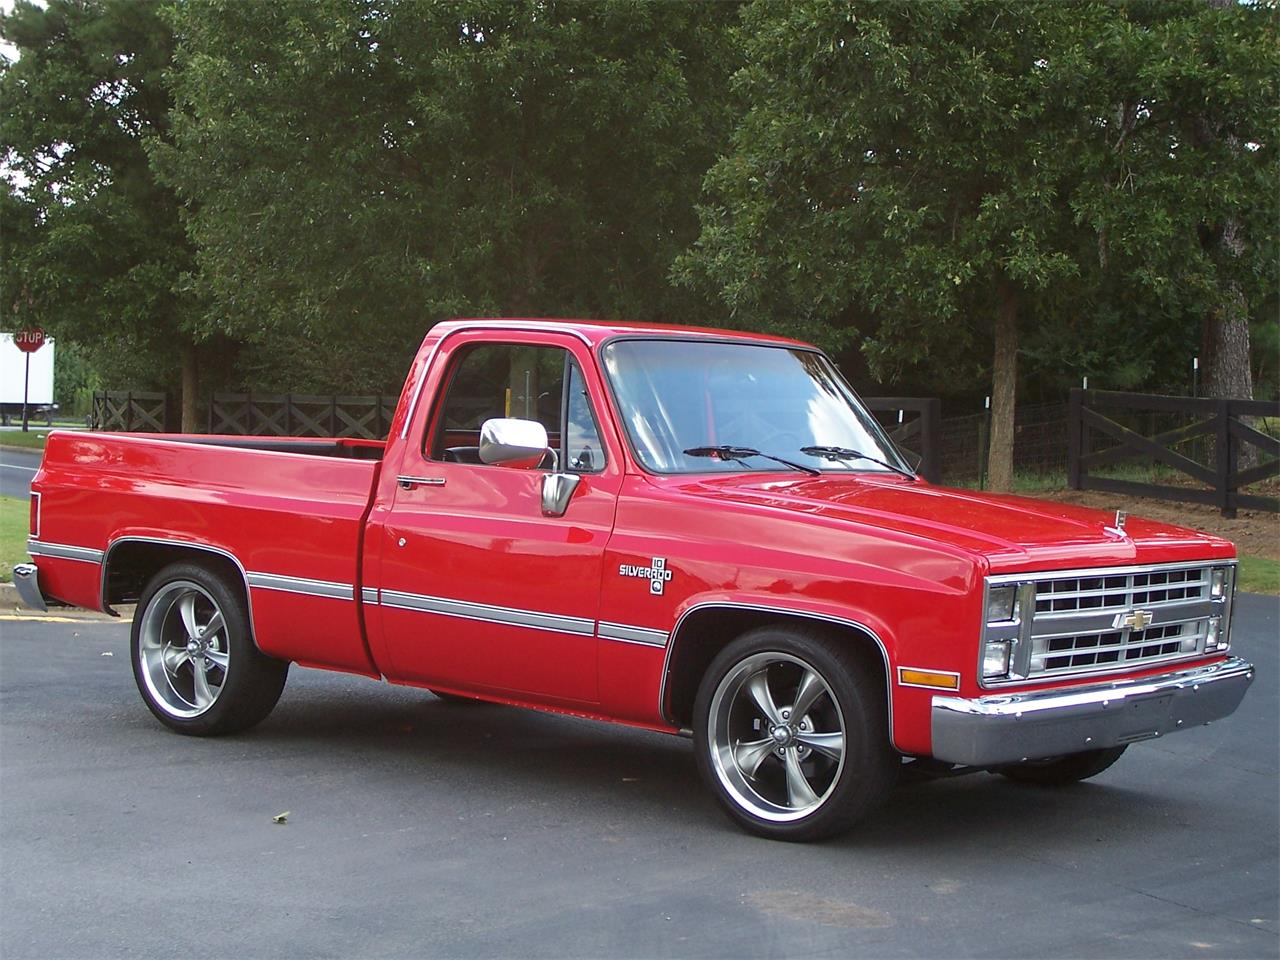 1985 Chevrolet C/K 10 for sale in Alpharetta, GA – photo 5